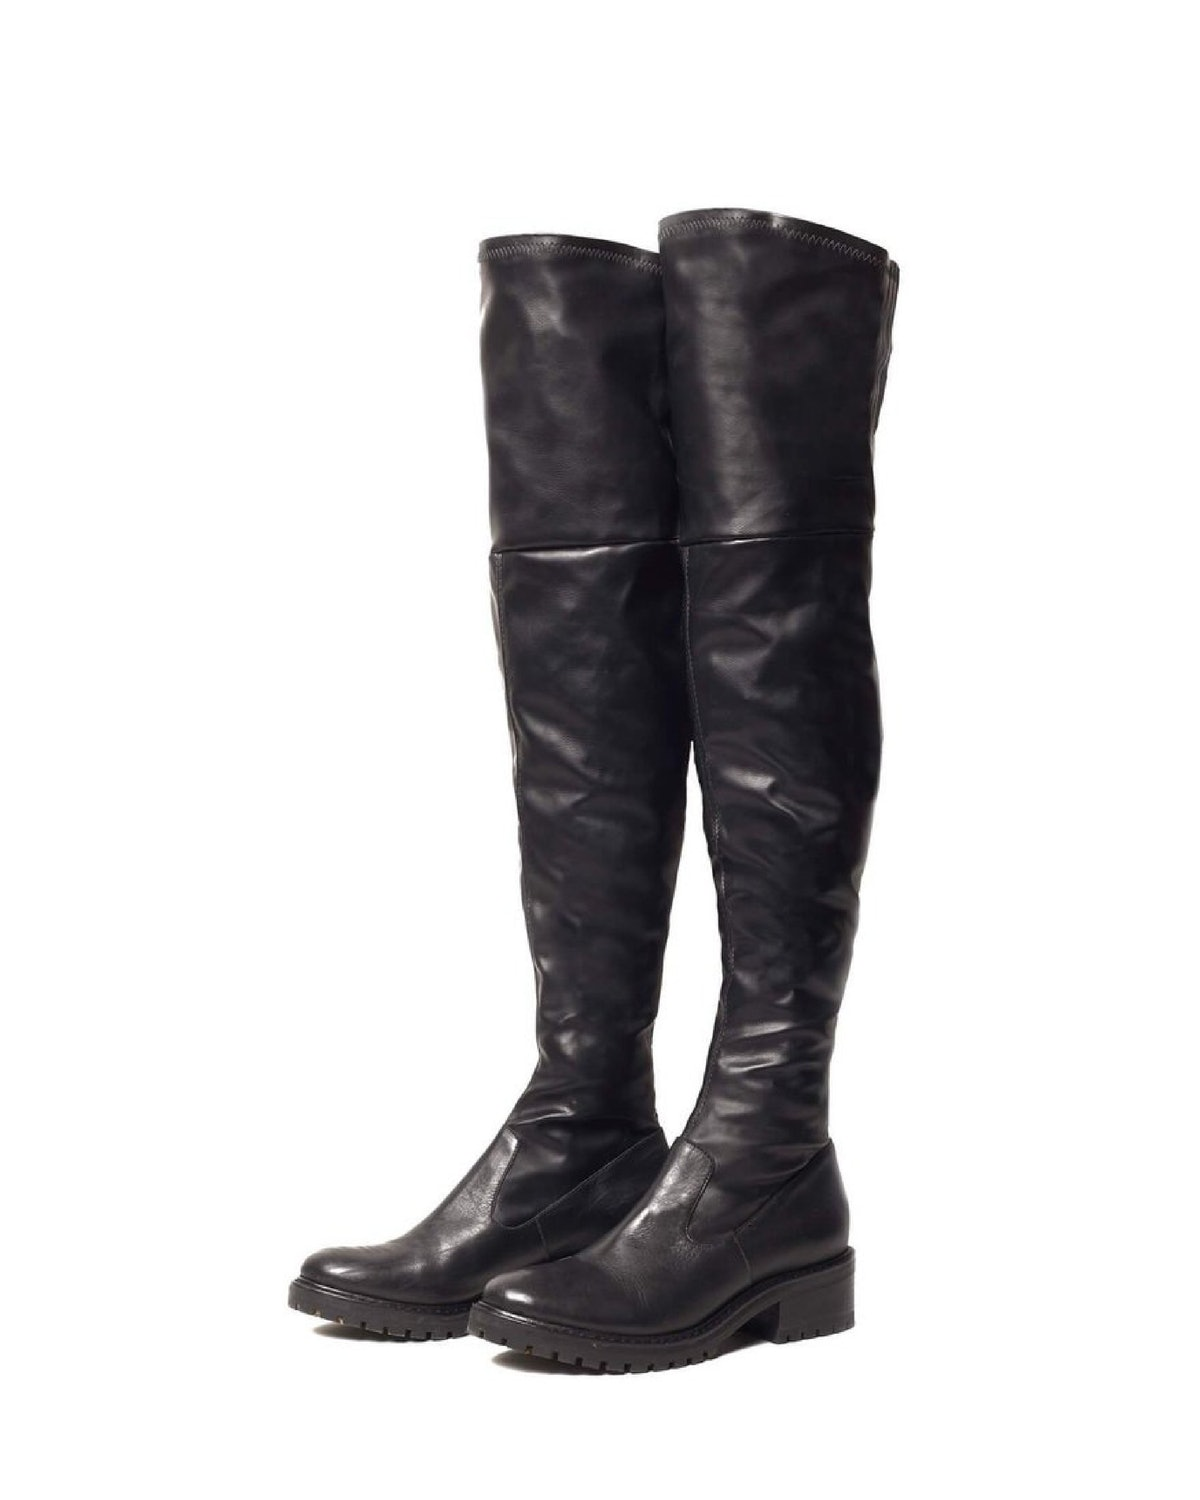 Maxime Boots in Black from VICSON.